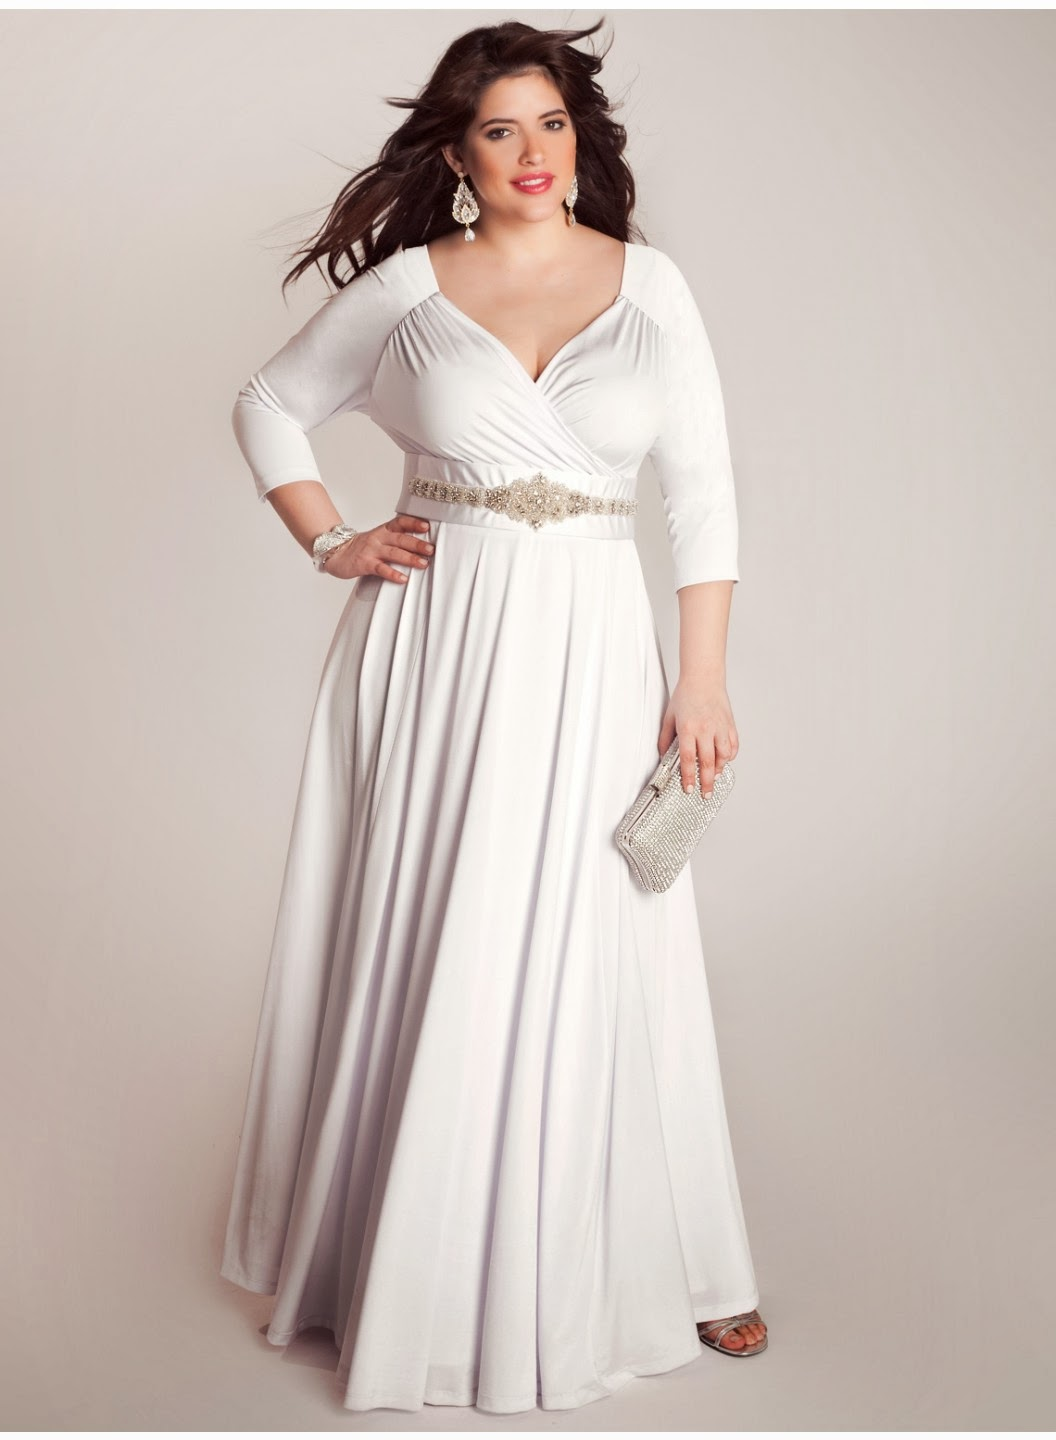 Casual Plus Size Wedding Dresses Wedding Stuff Ideas